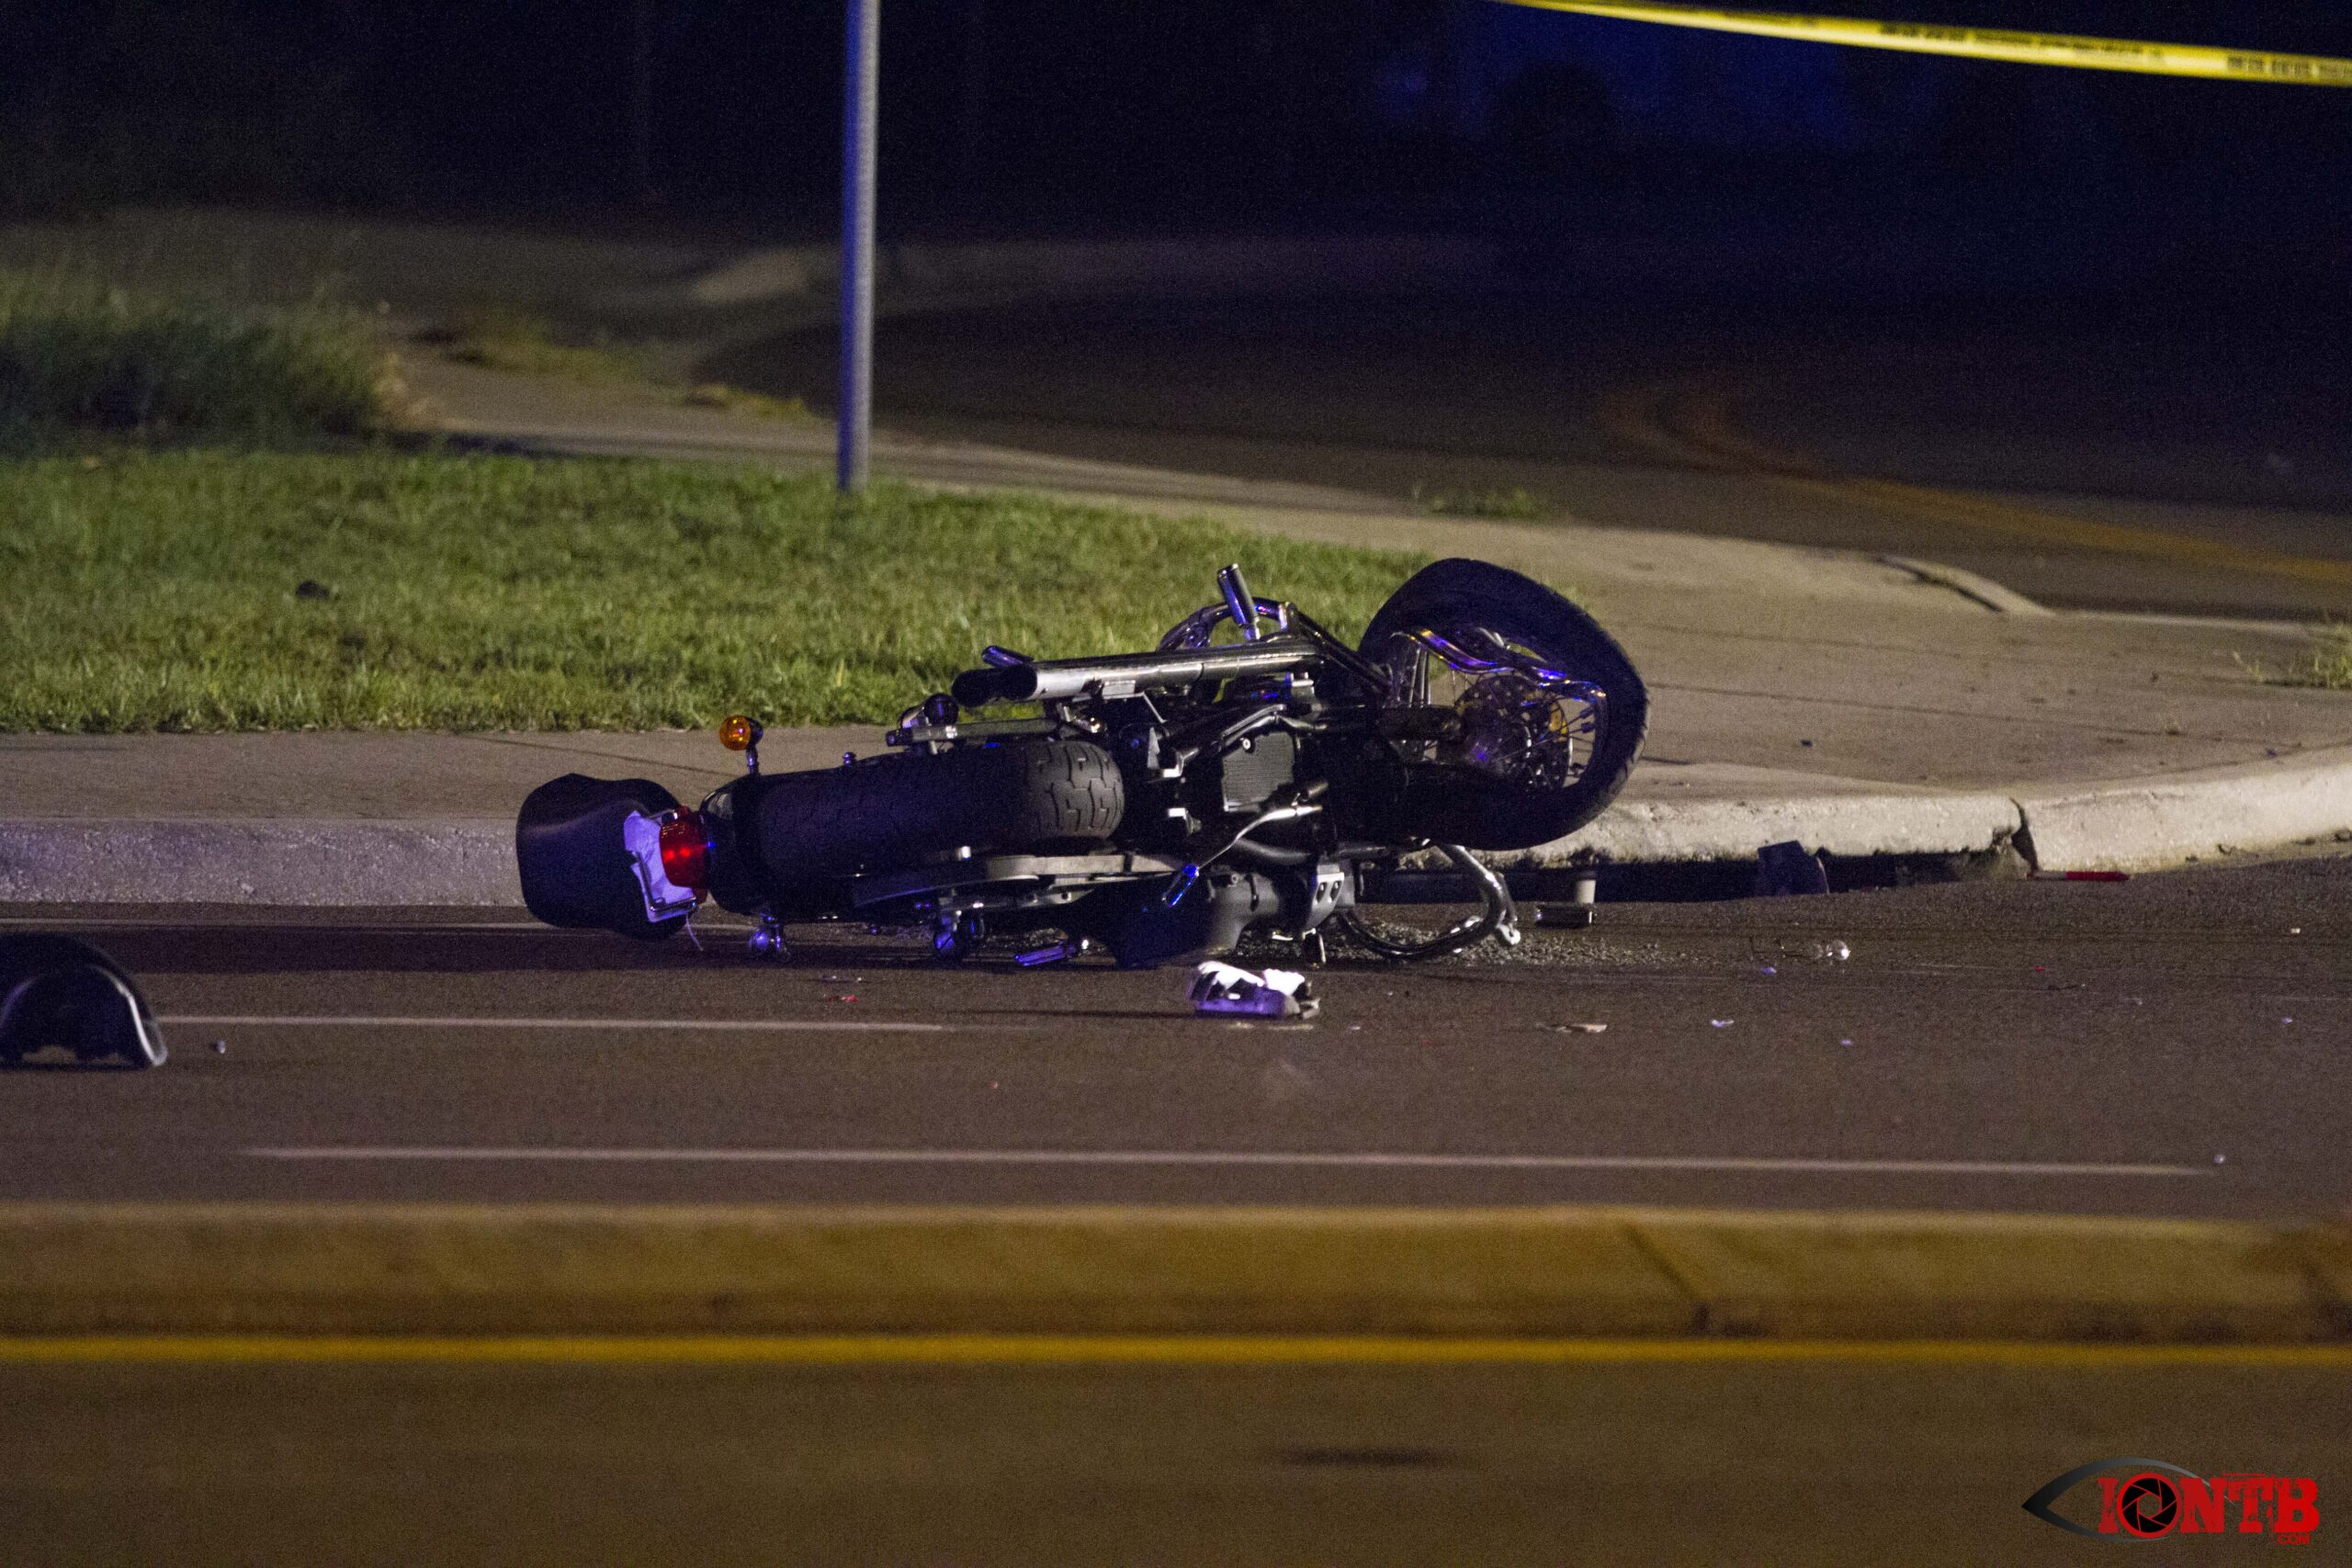 Motorcyclist Seriously Injured in Seminole Hit and Run Crash